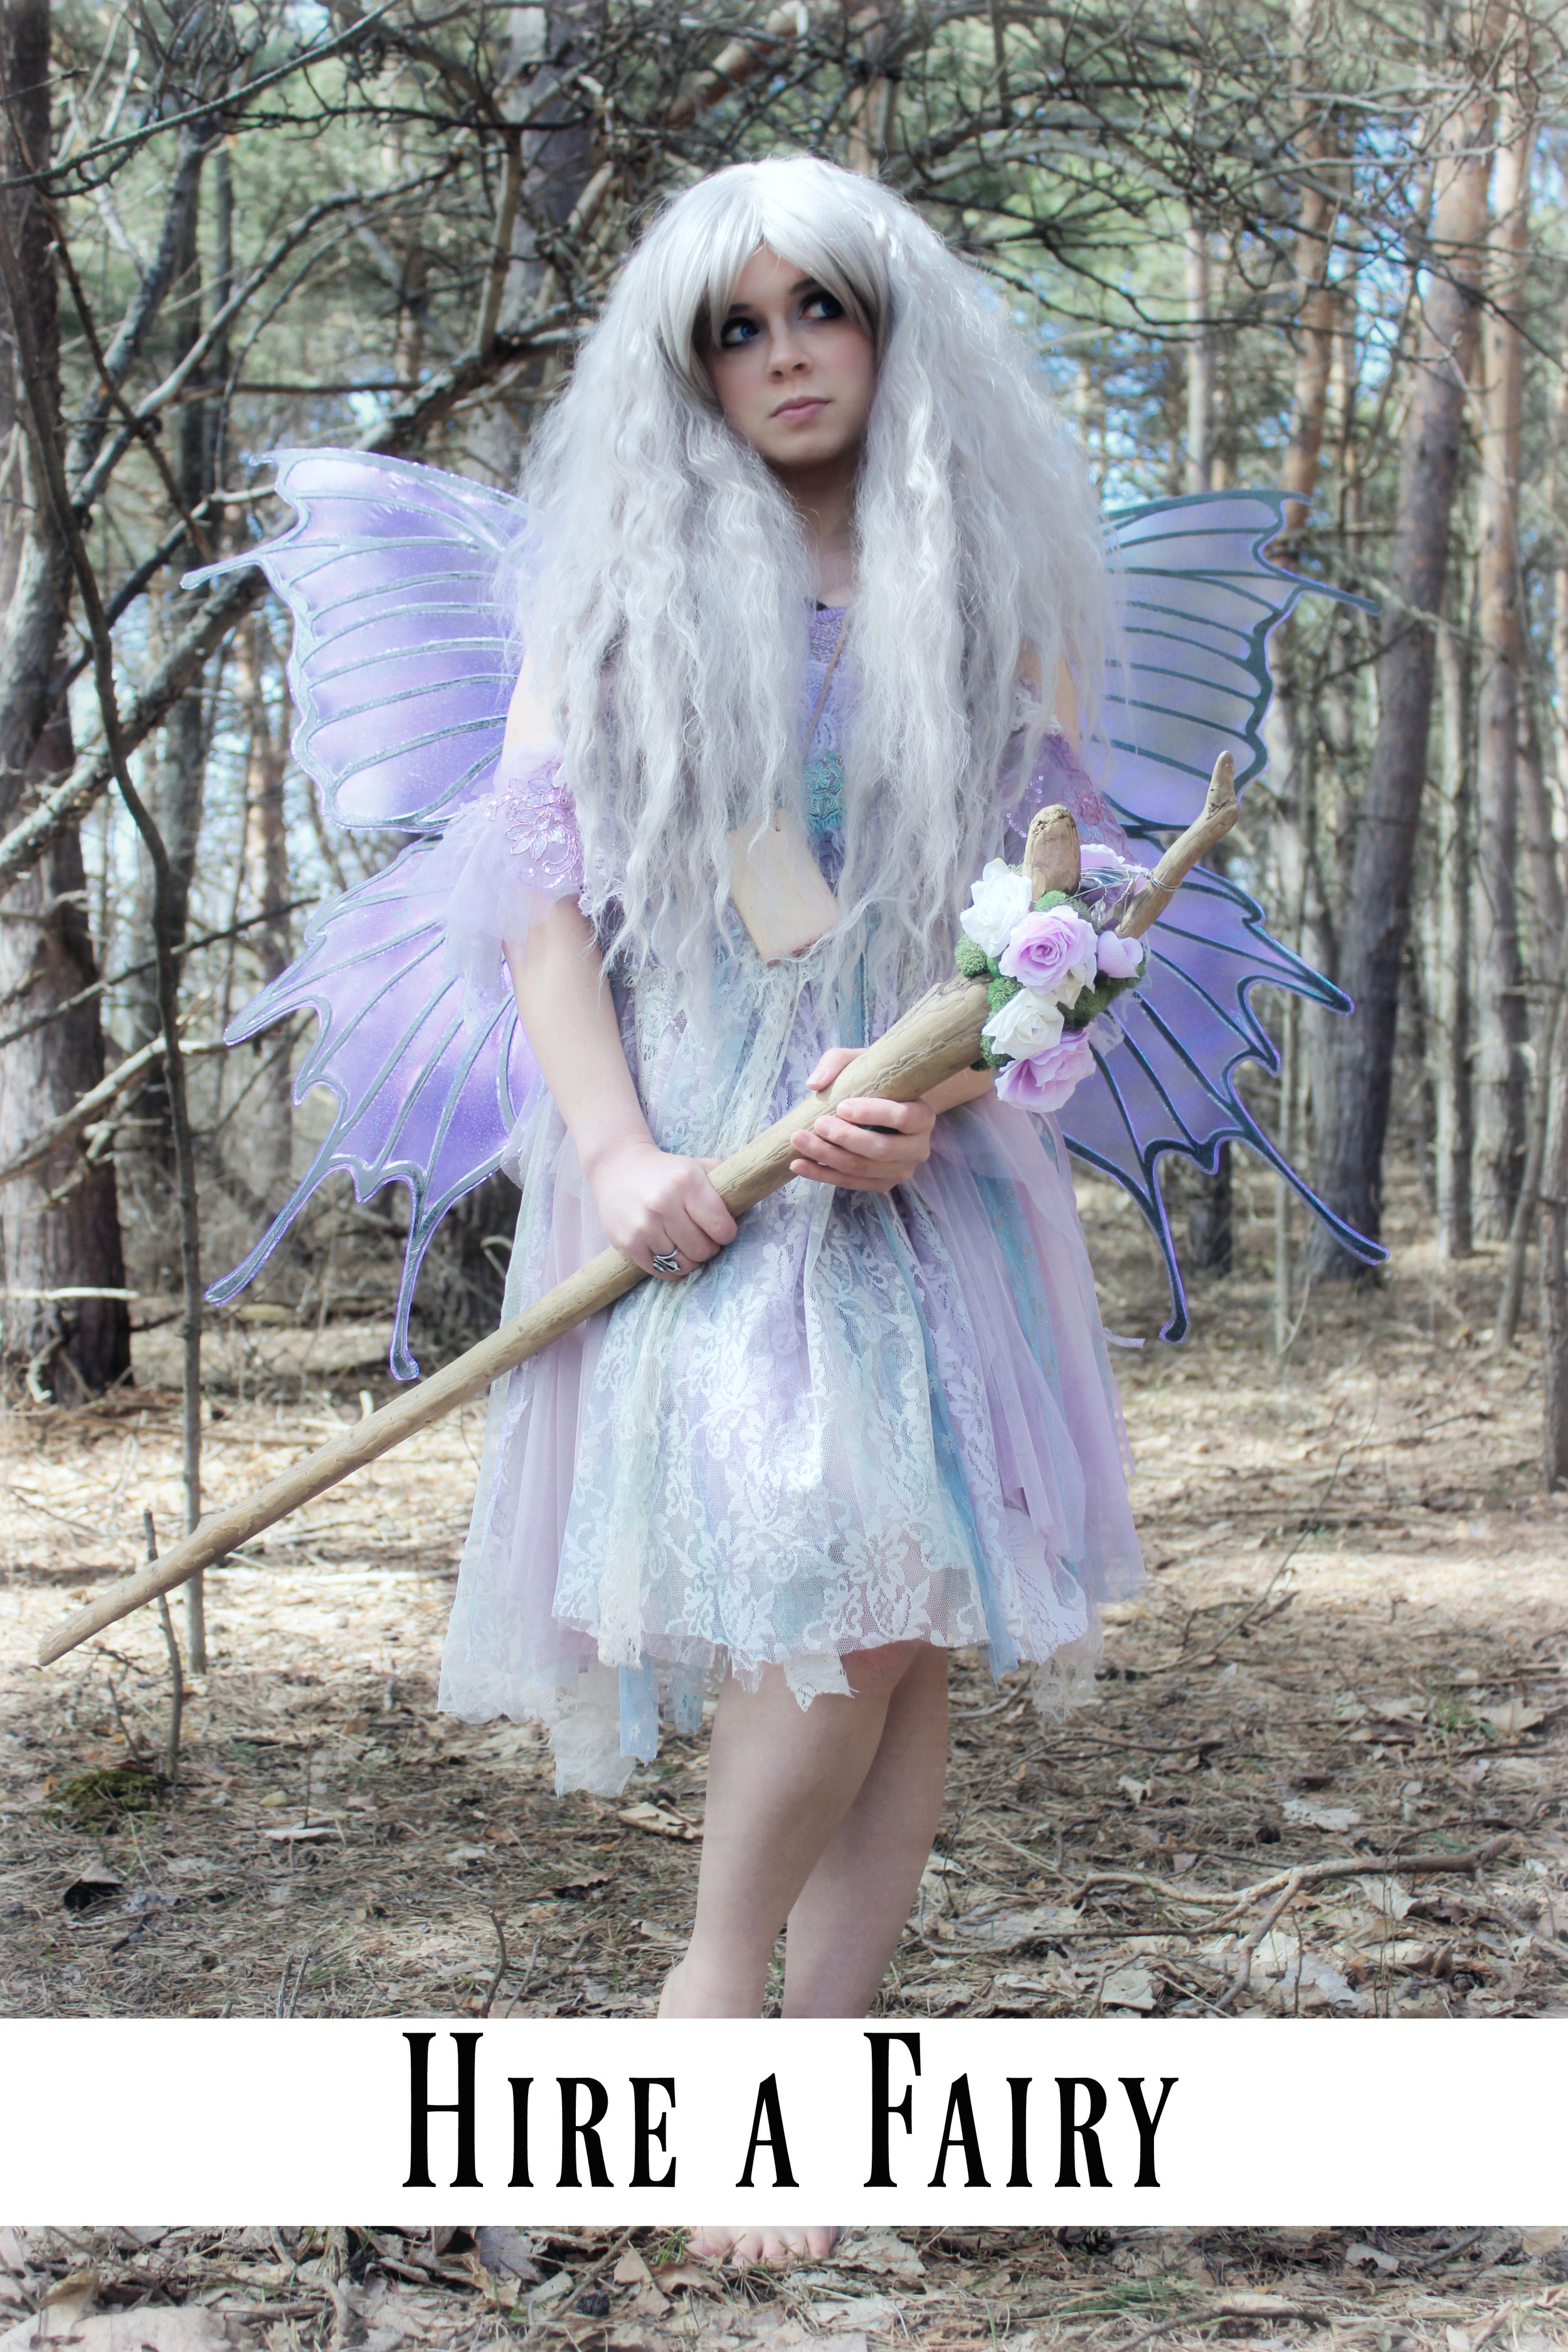 Fairy Princess for hire! Need a realistic fairy to come visit you for a special event or party? Hire Phantom the Glitter Fairy, in Traverse City, Michigan. She is willing to travel as well. CLICK HERE to learn more.